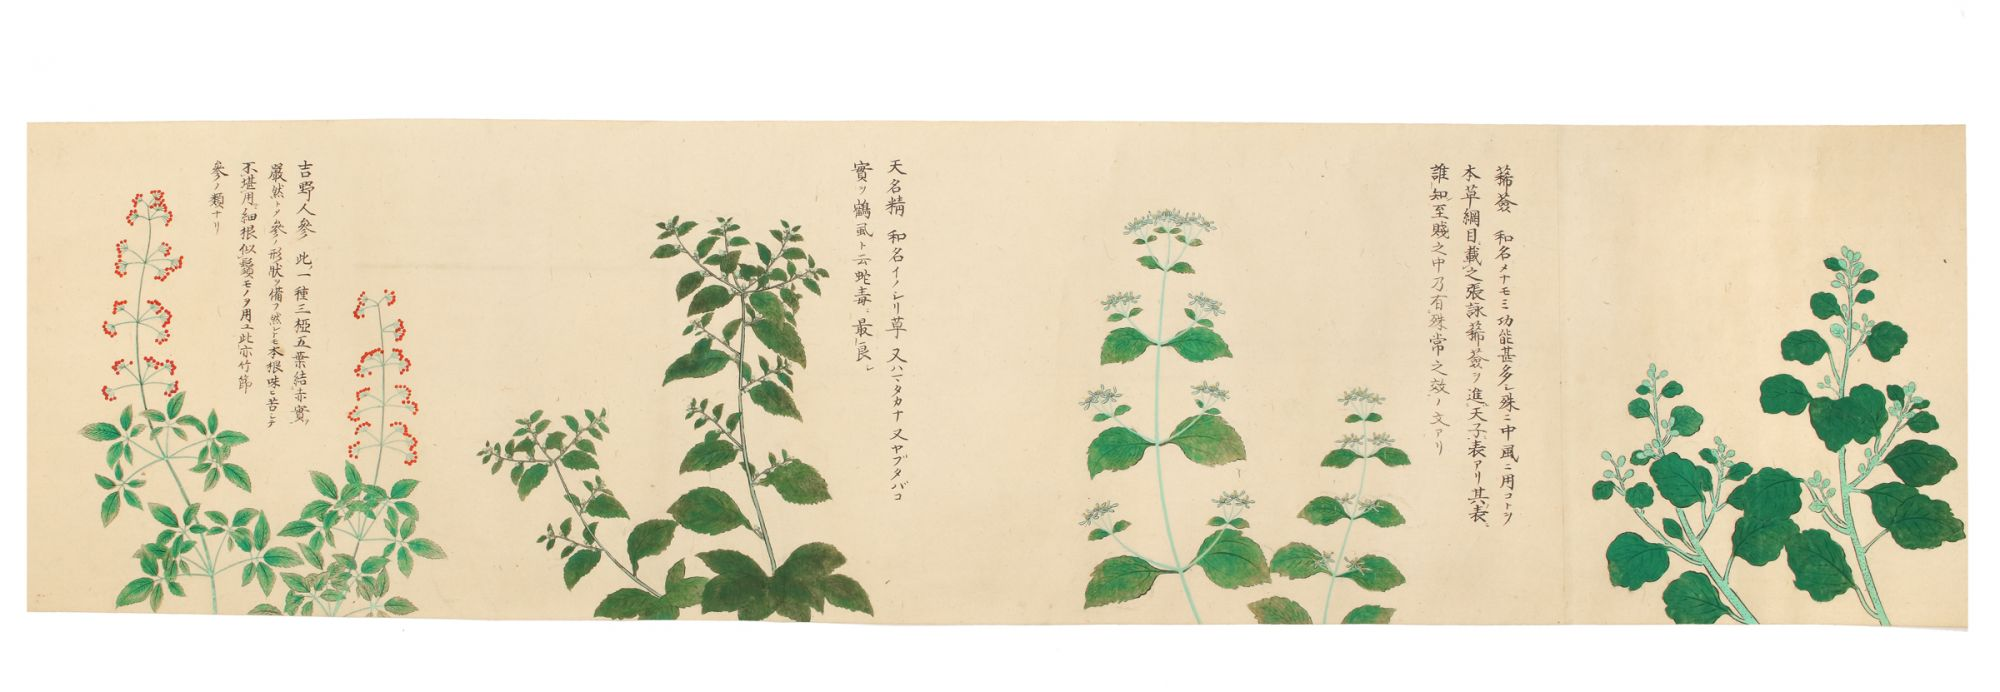 A finely executed and long scroll depicting numerous medicinal plants,  rendered in brush & ink and delicate washes of many colors by MEDICINAL  PLANTS